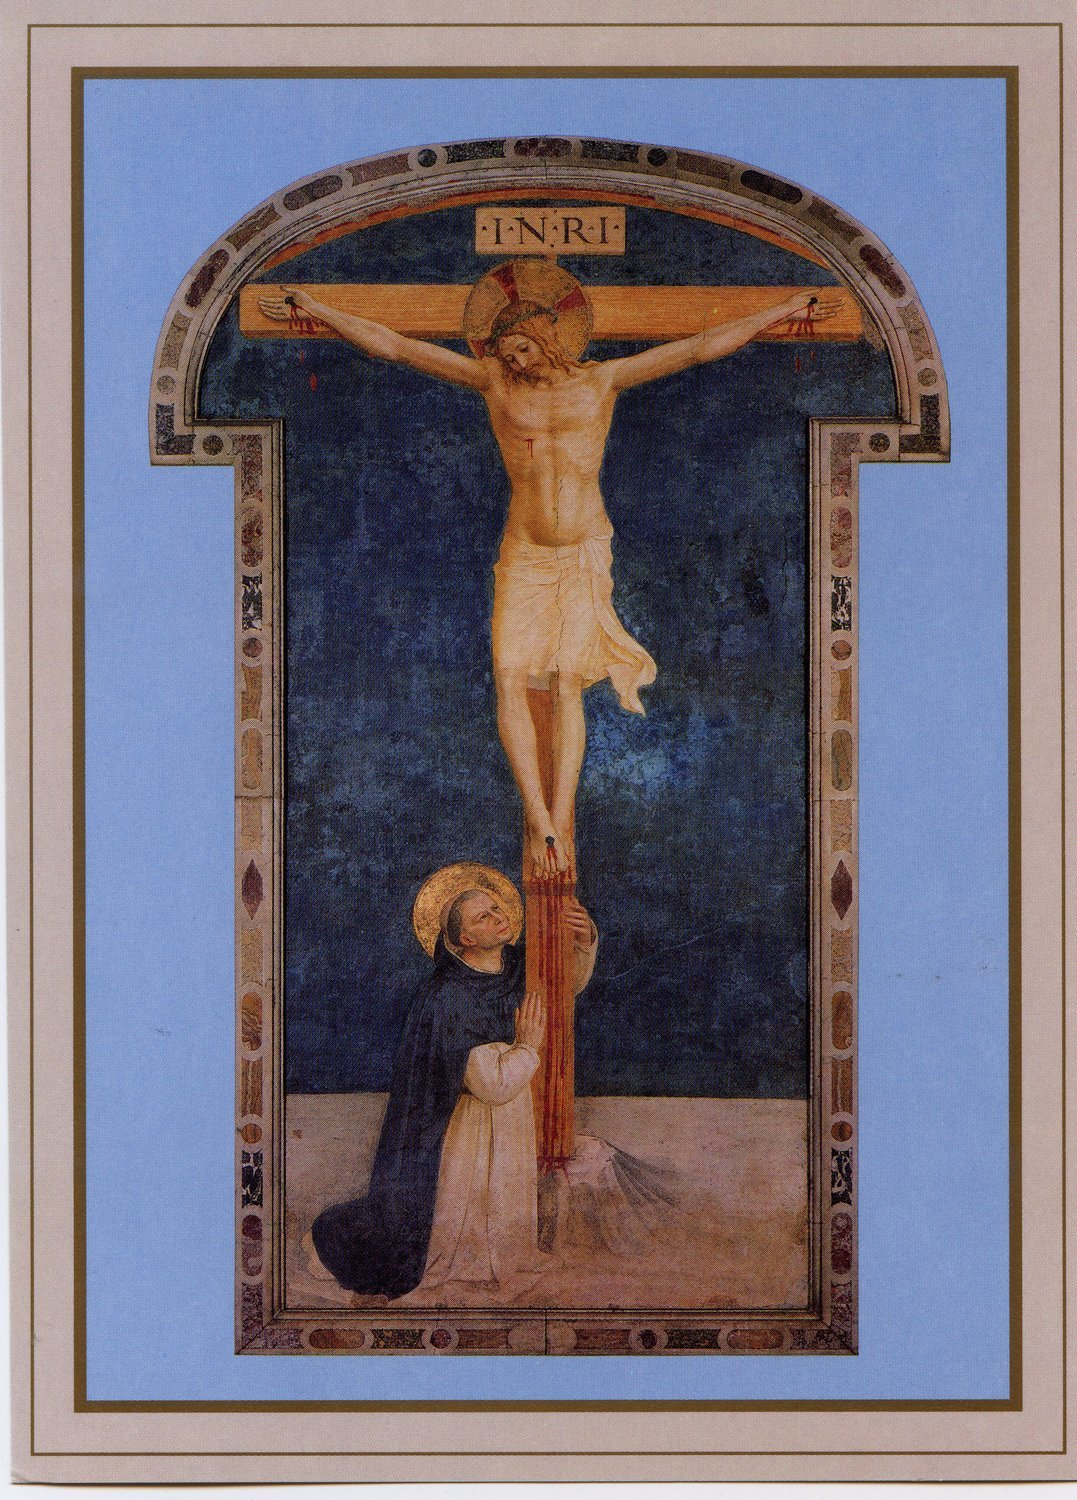 St. Dominic Adoring the Crucifixion Holy Card (Single)